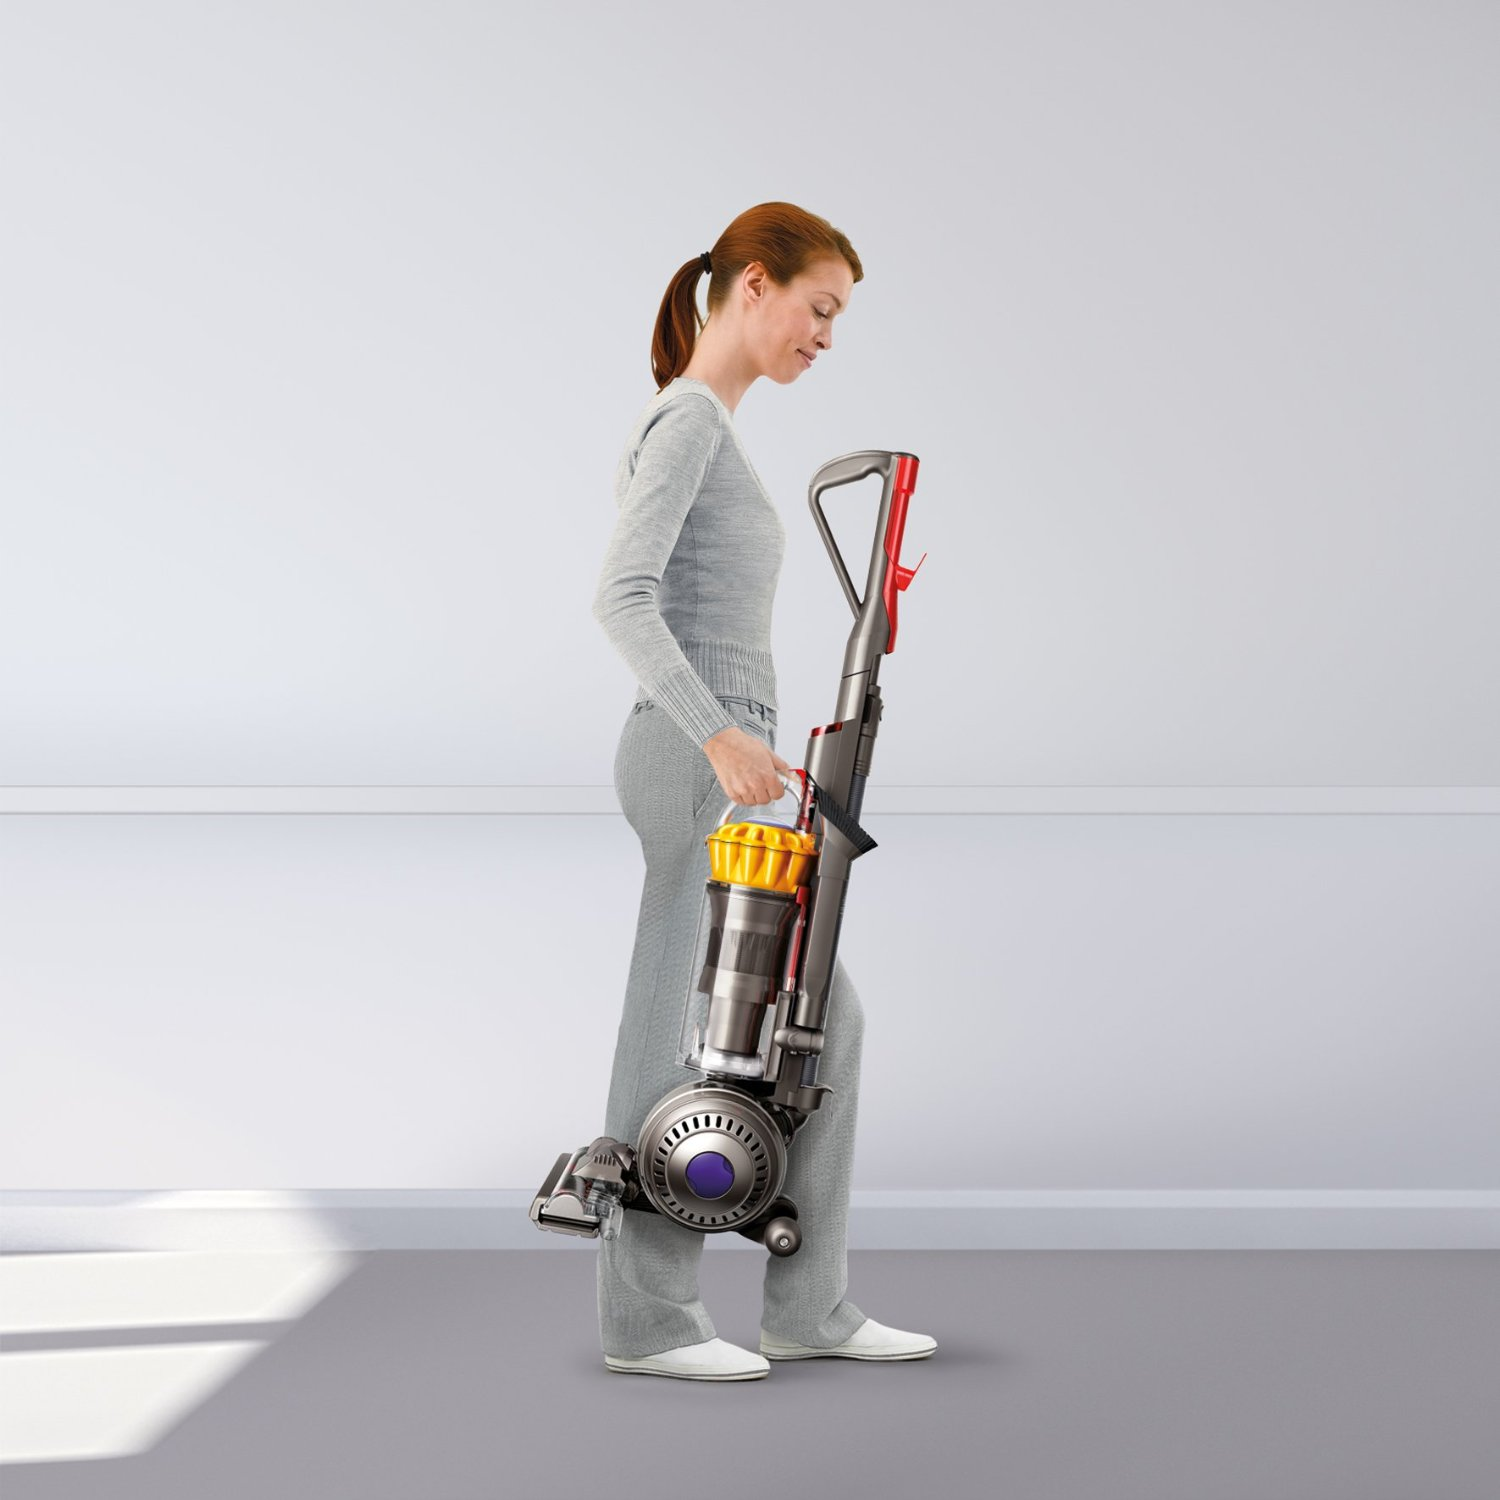 Dyson Dc40 Origin Upright Bagless Vacuum Cleaner Denver